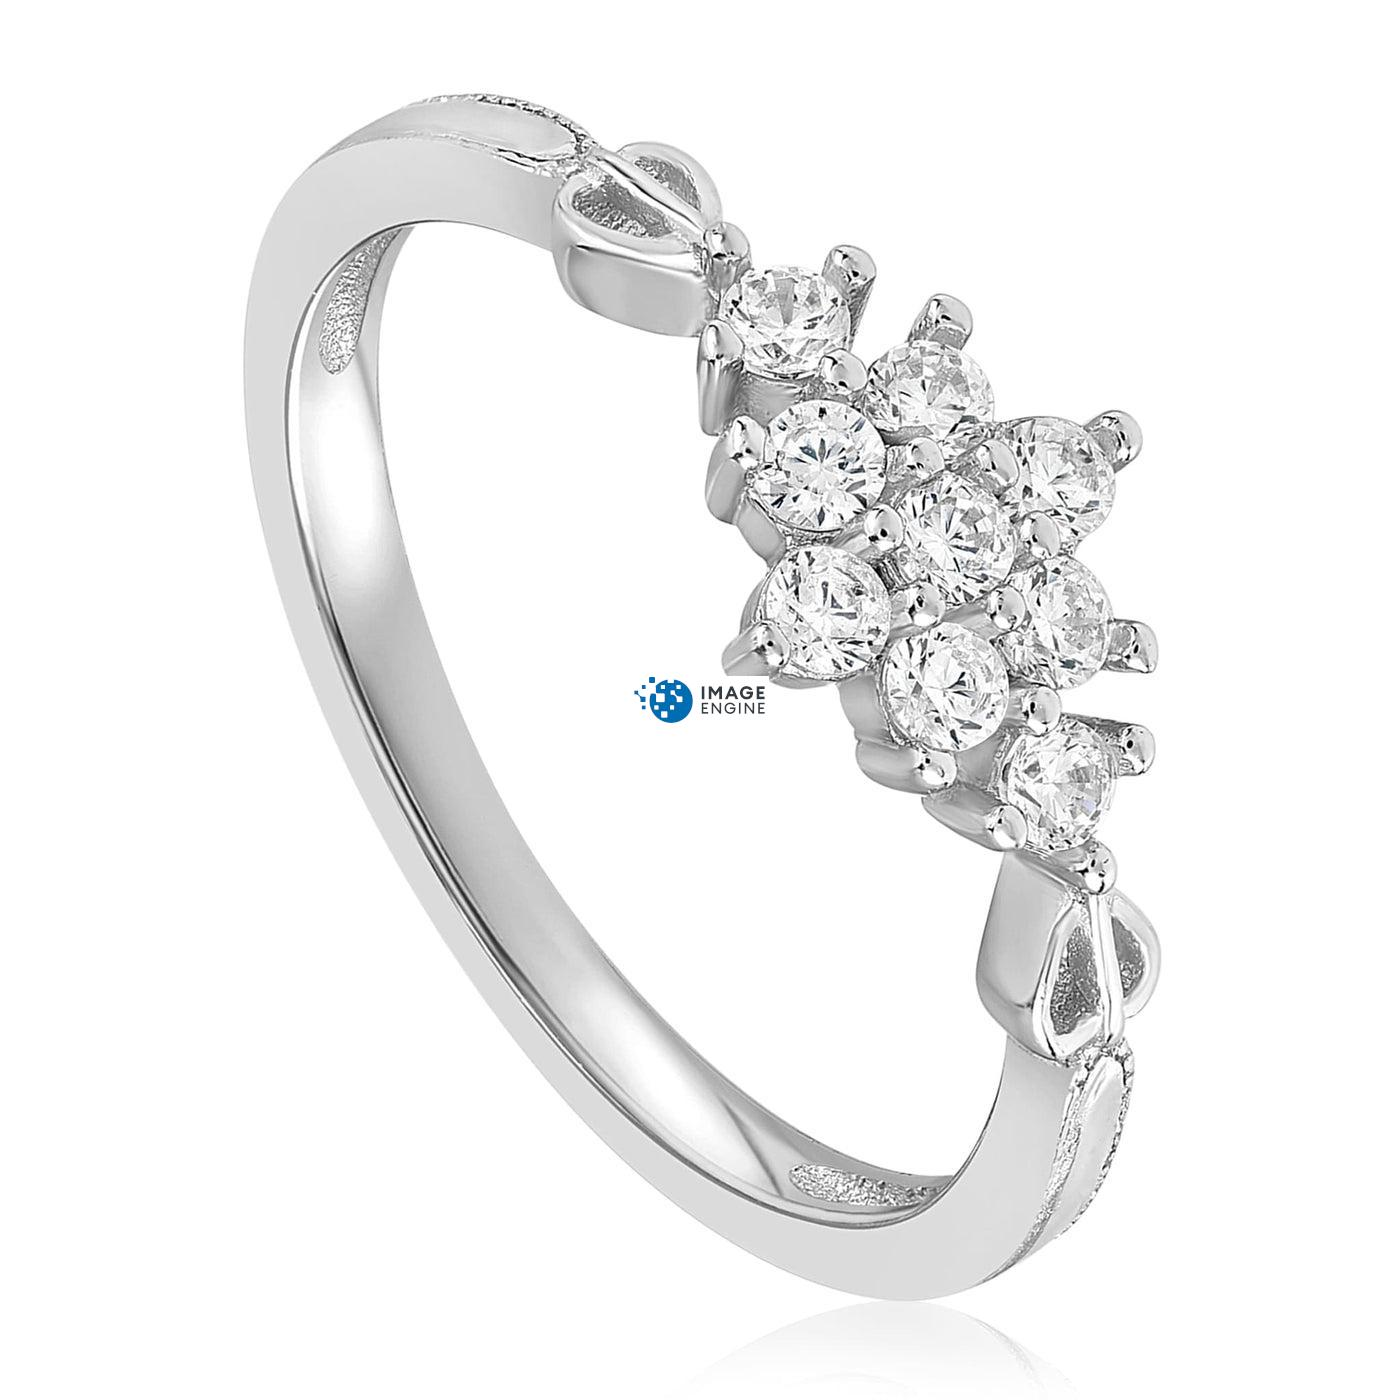 Sarah Snowflake Dainty Ring - Three Quarter View - 925 Sterling Silver